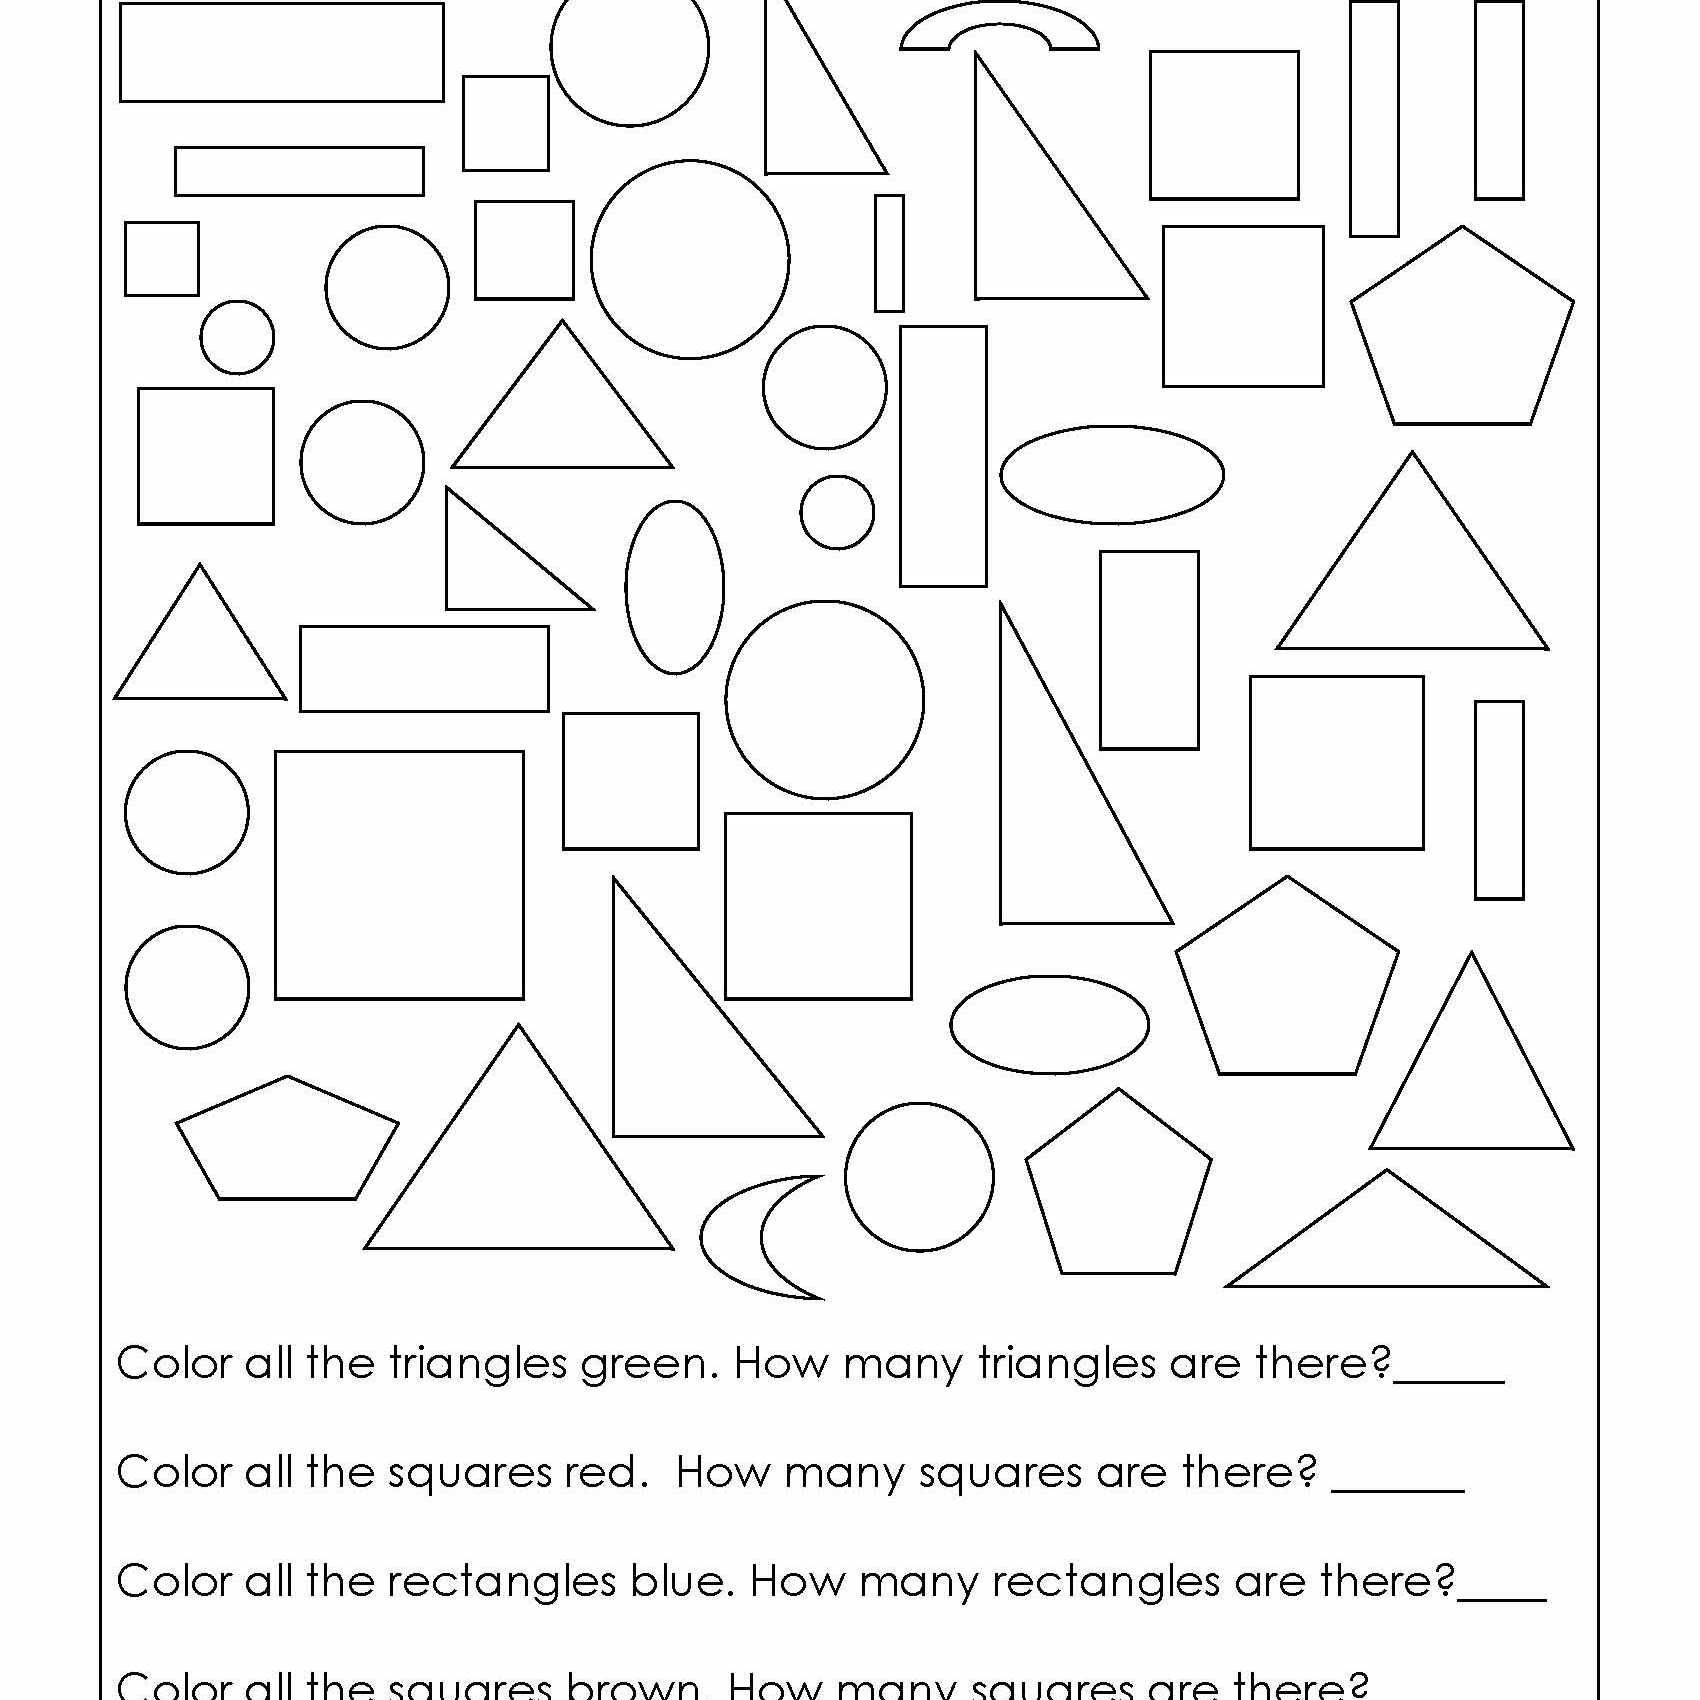 Middle School Science Worksheets Pdf Kingandsullivan 1st Grade Science Worksheet Math Worksheets